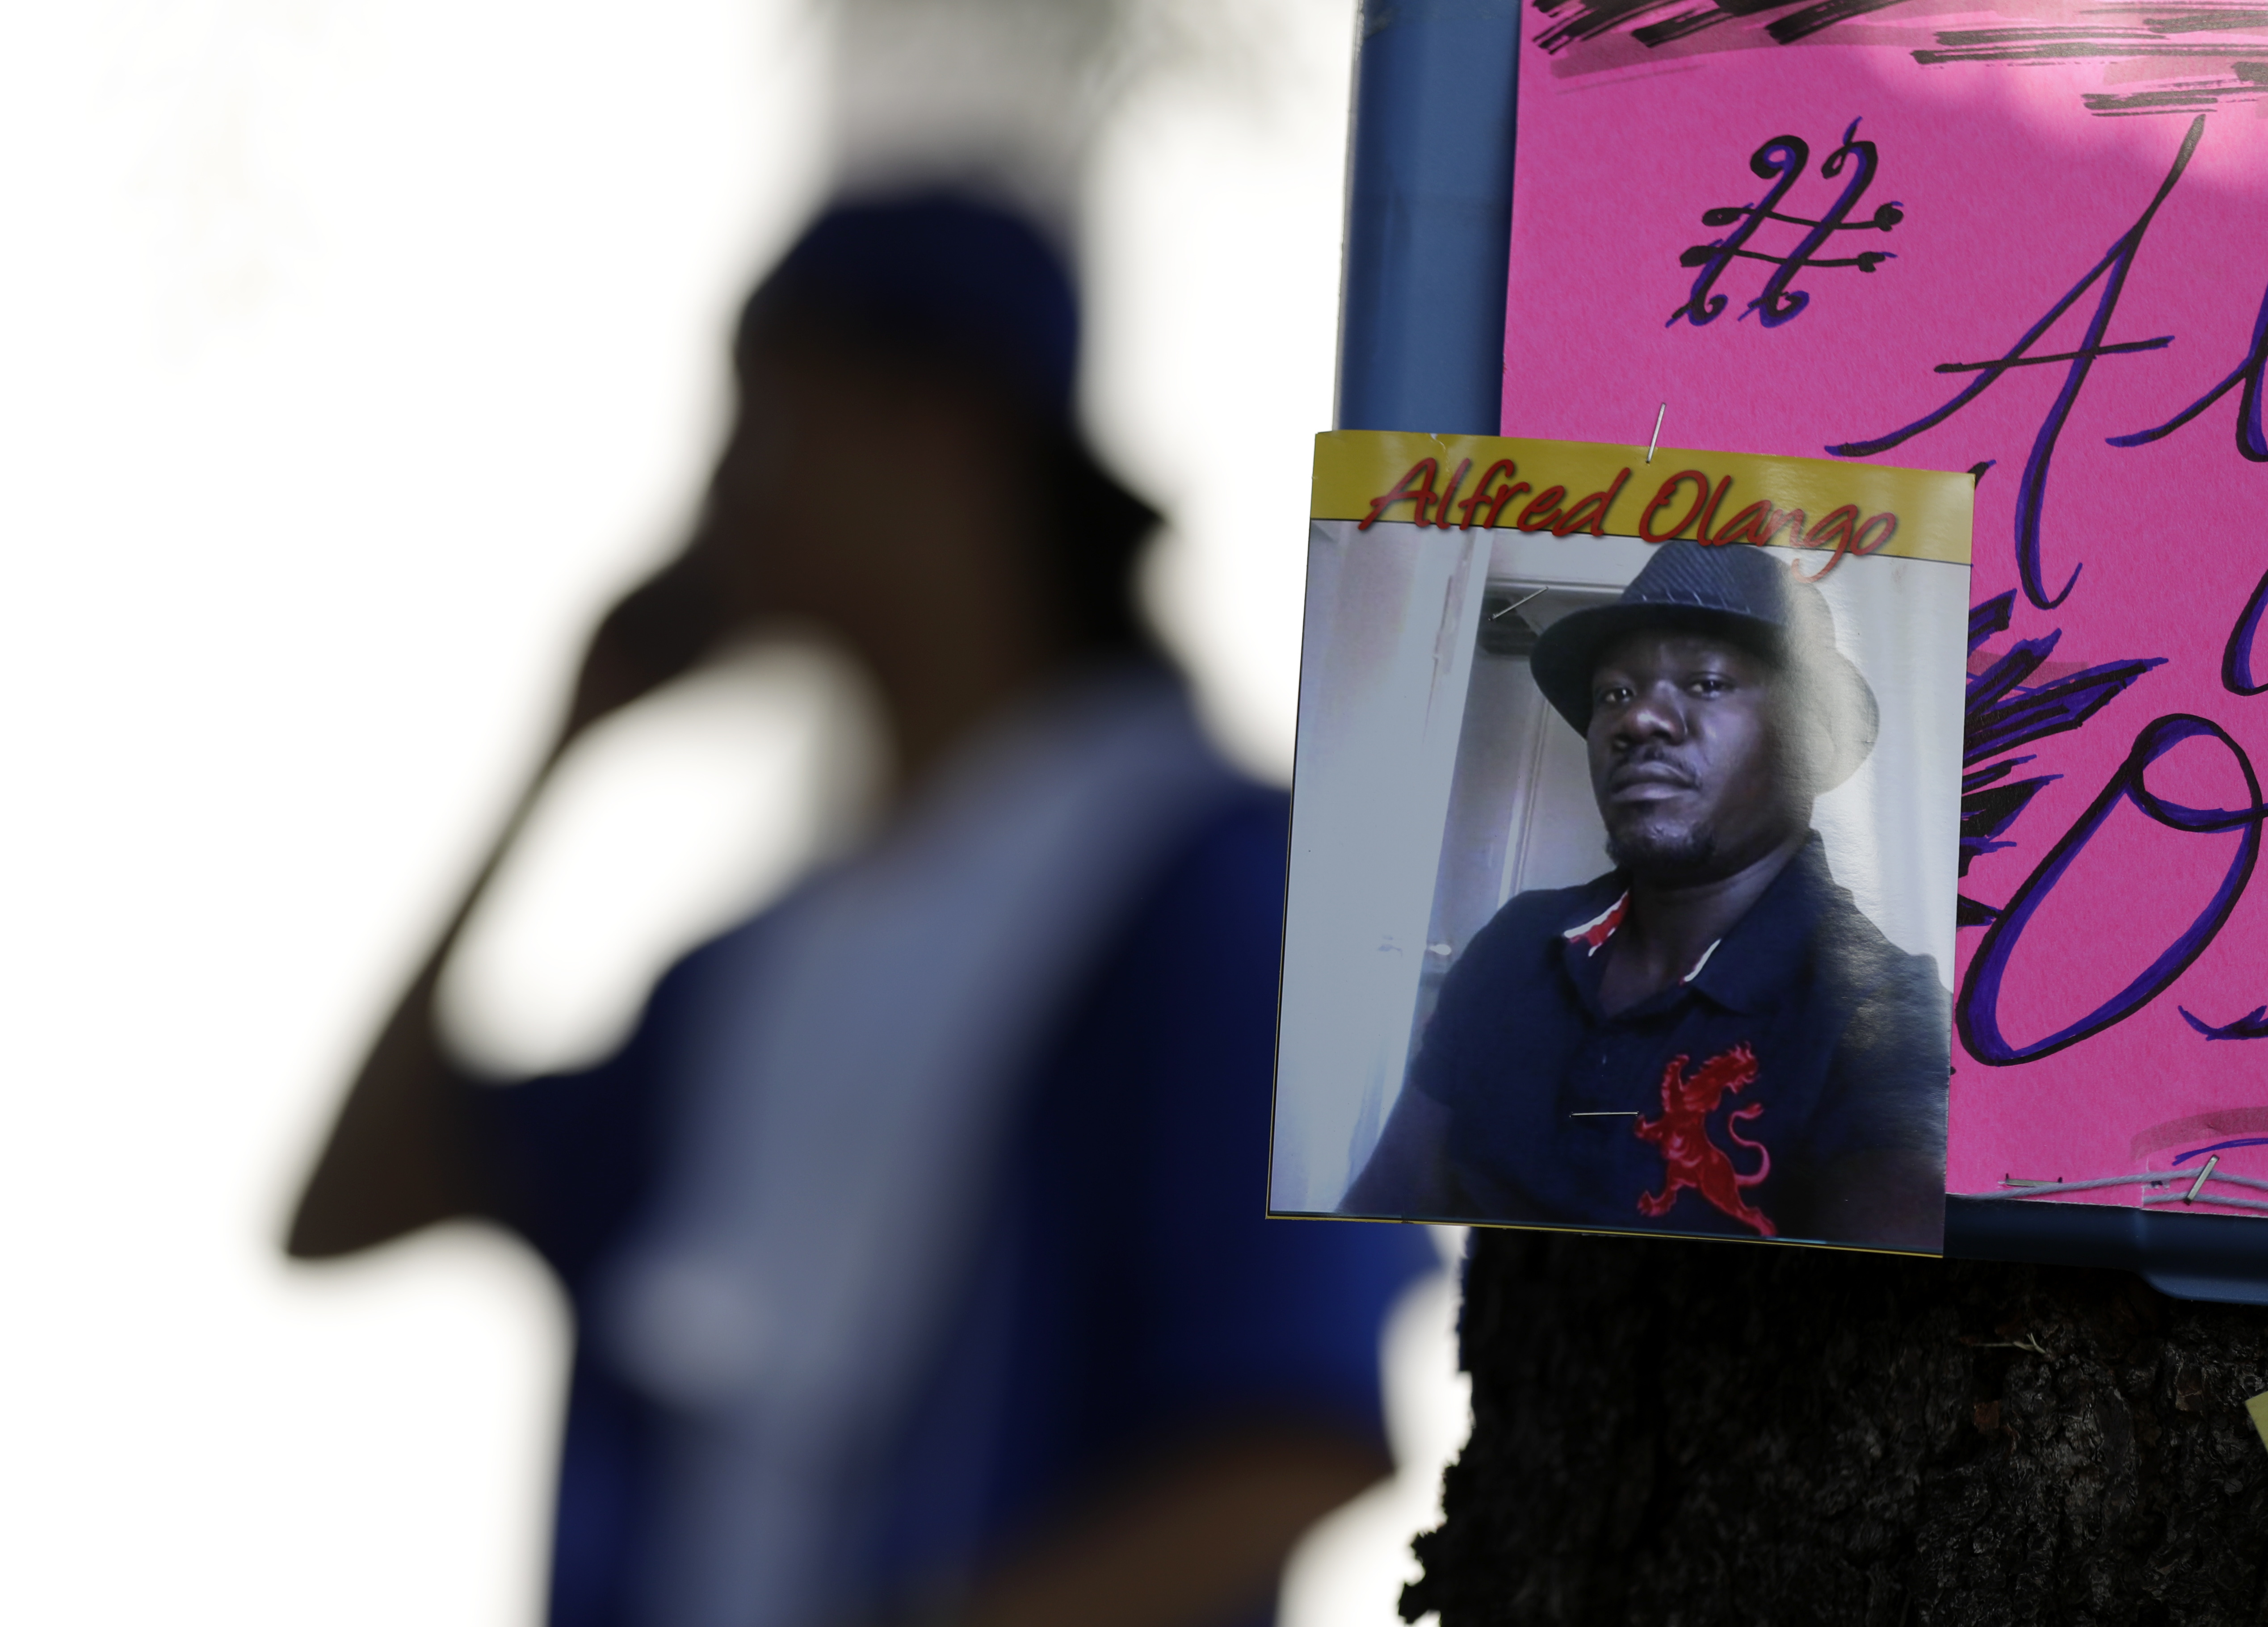 A man stands behind a picture of Alfred Olango during a protest, in El Cajon, Calif., on Sept. 28, 2016.